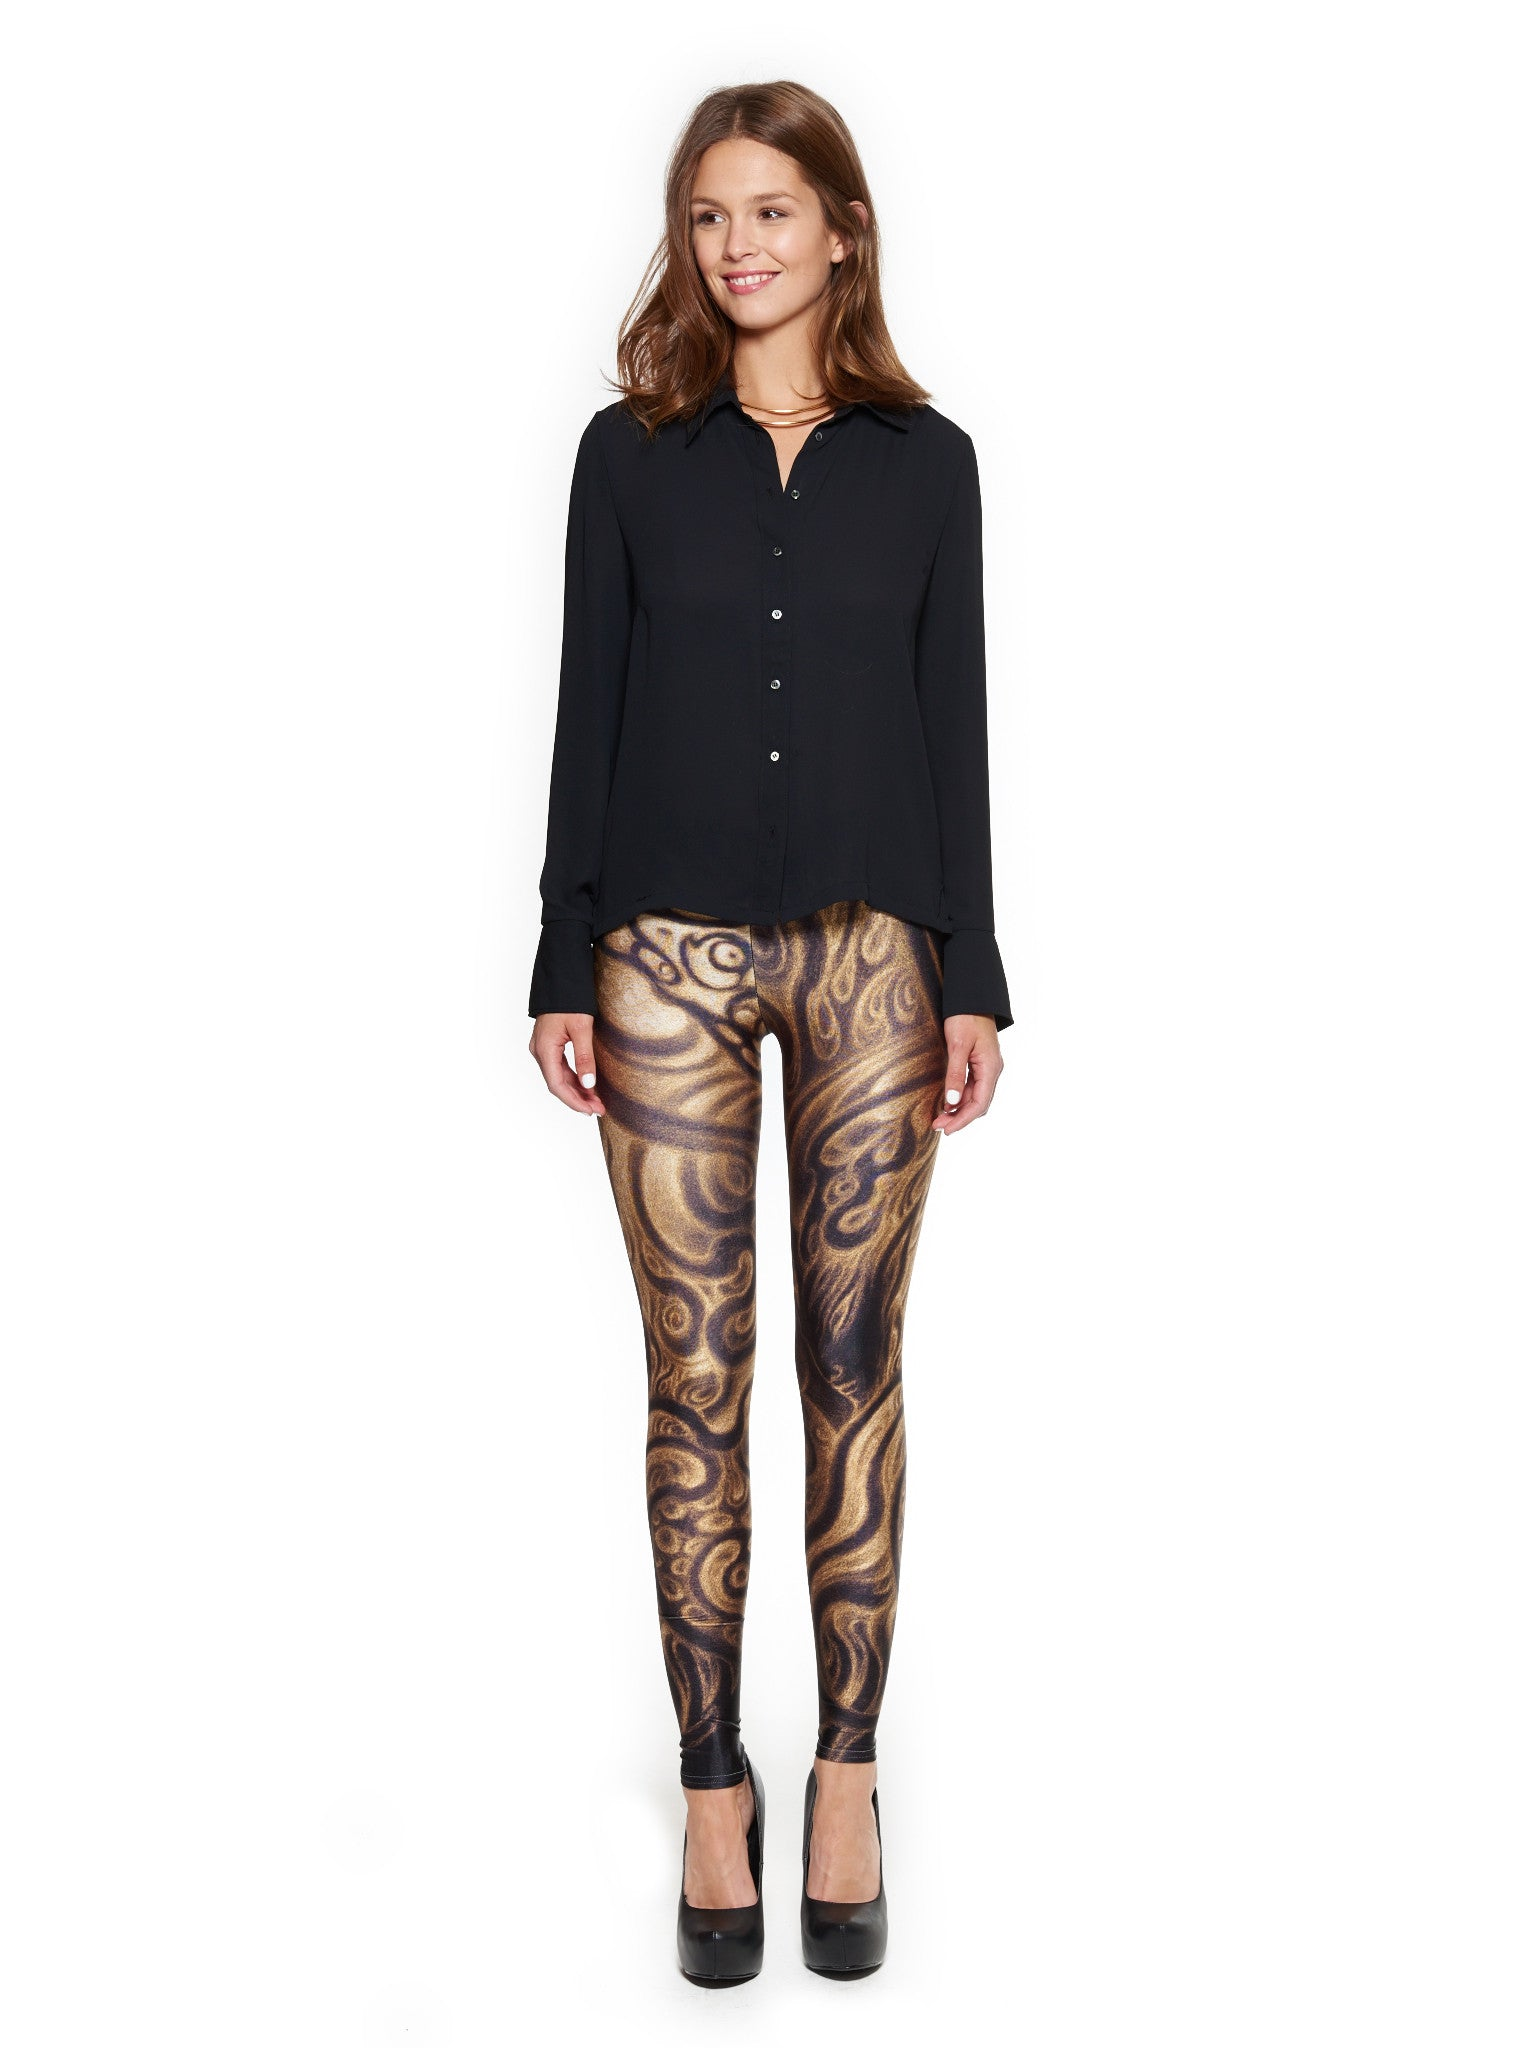 The Invisible Guidance Queen West Leggings - Nuvango Gallery & Goods - 1